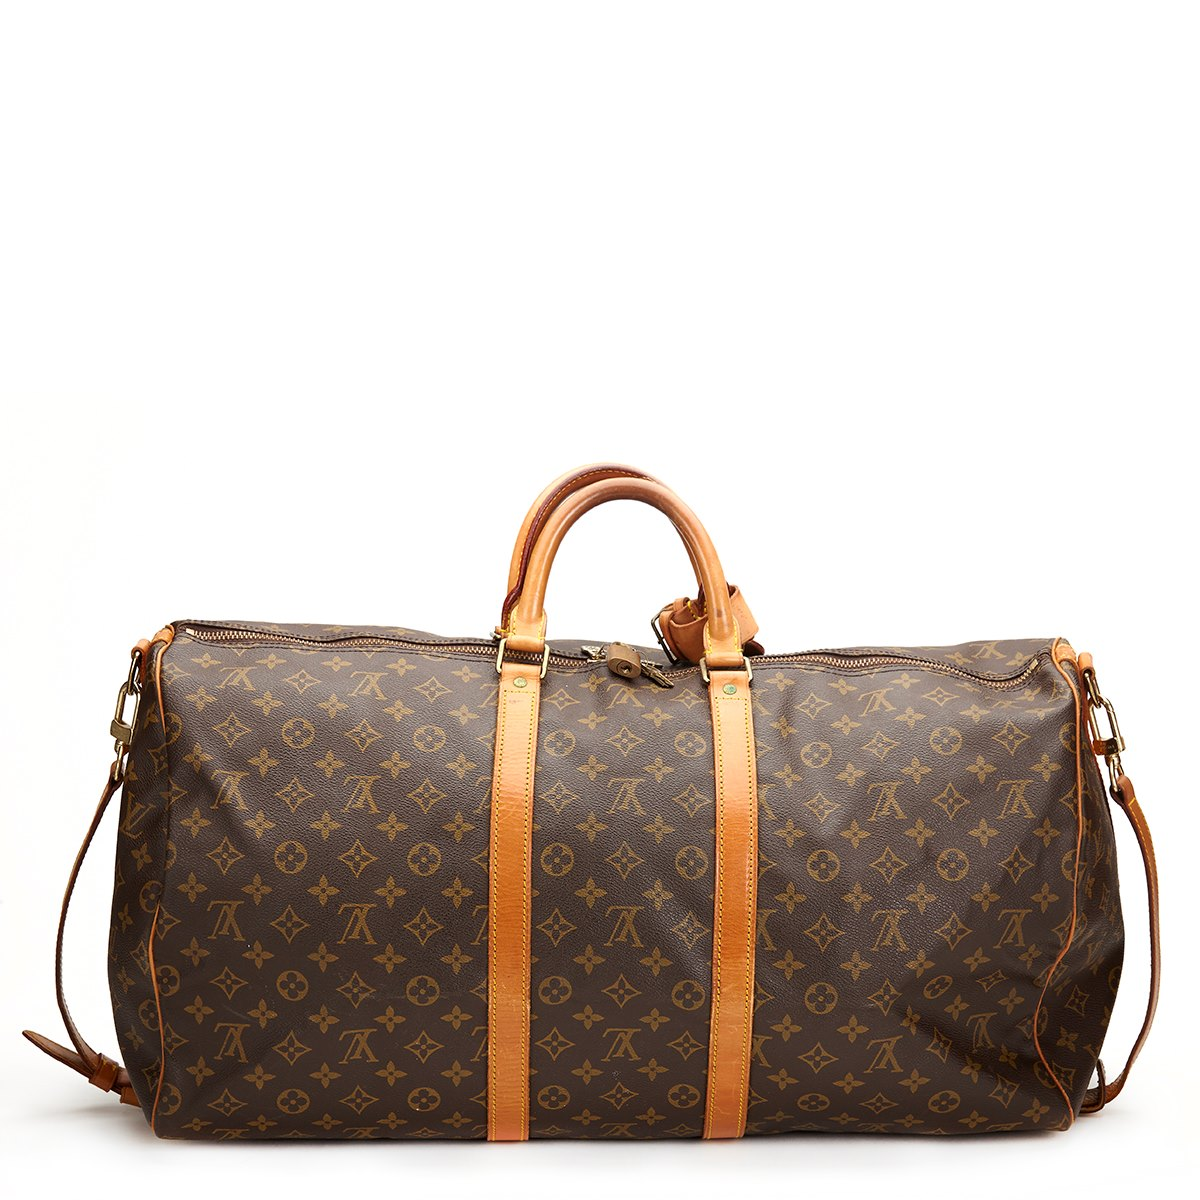 louis vuitton keepall bandouliere 55 1987 hb319 second hand handbags. Black Bedroom Furniture Sets. Home Design Ideas